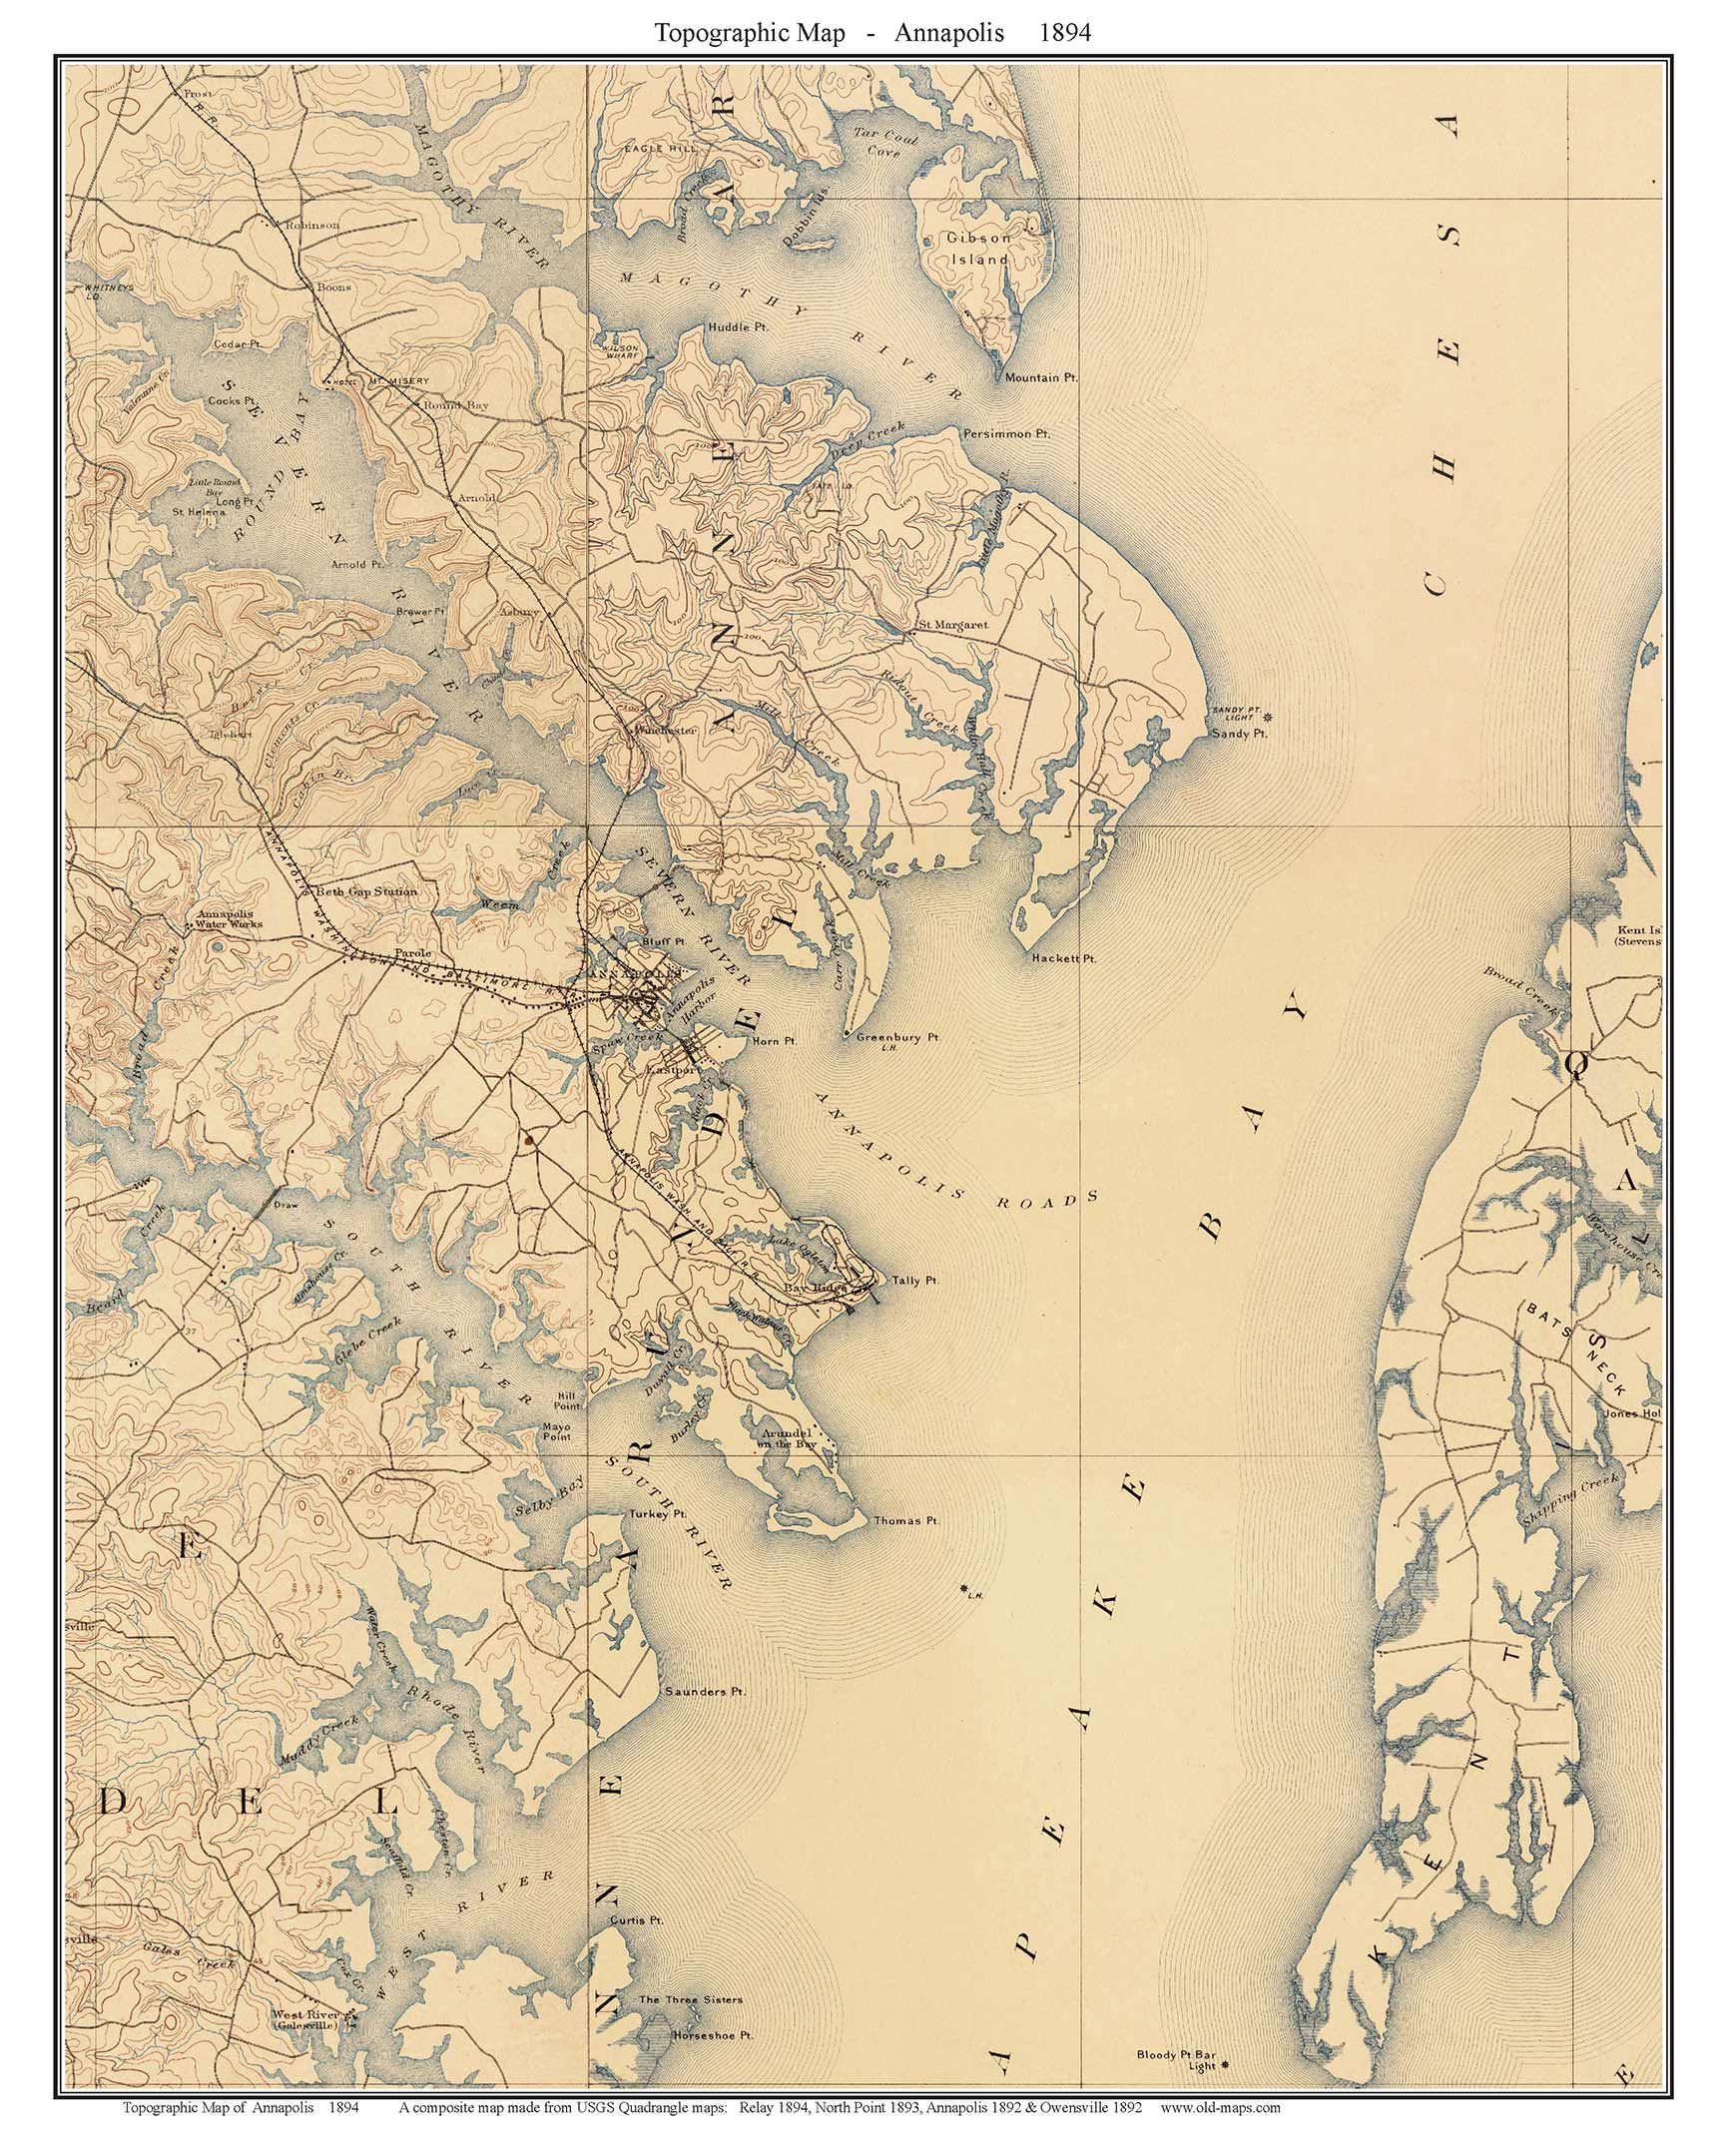 Annapolis 1894 - Custom USGS Old Topo Map - Maryland